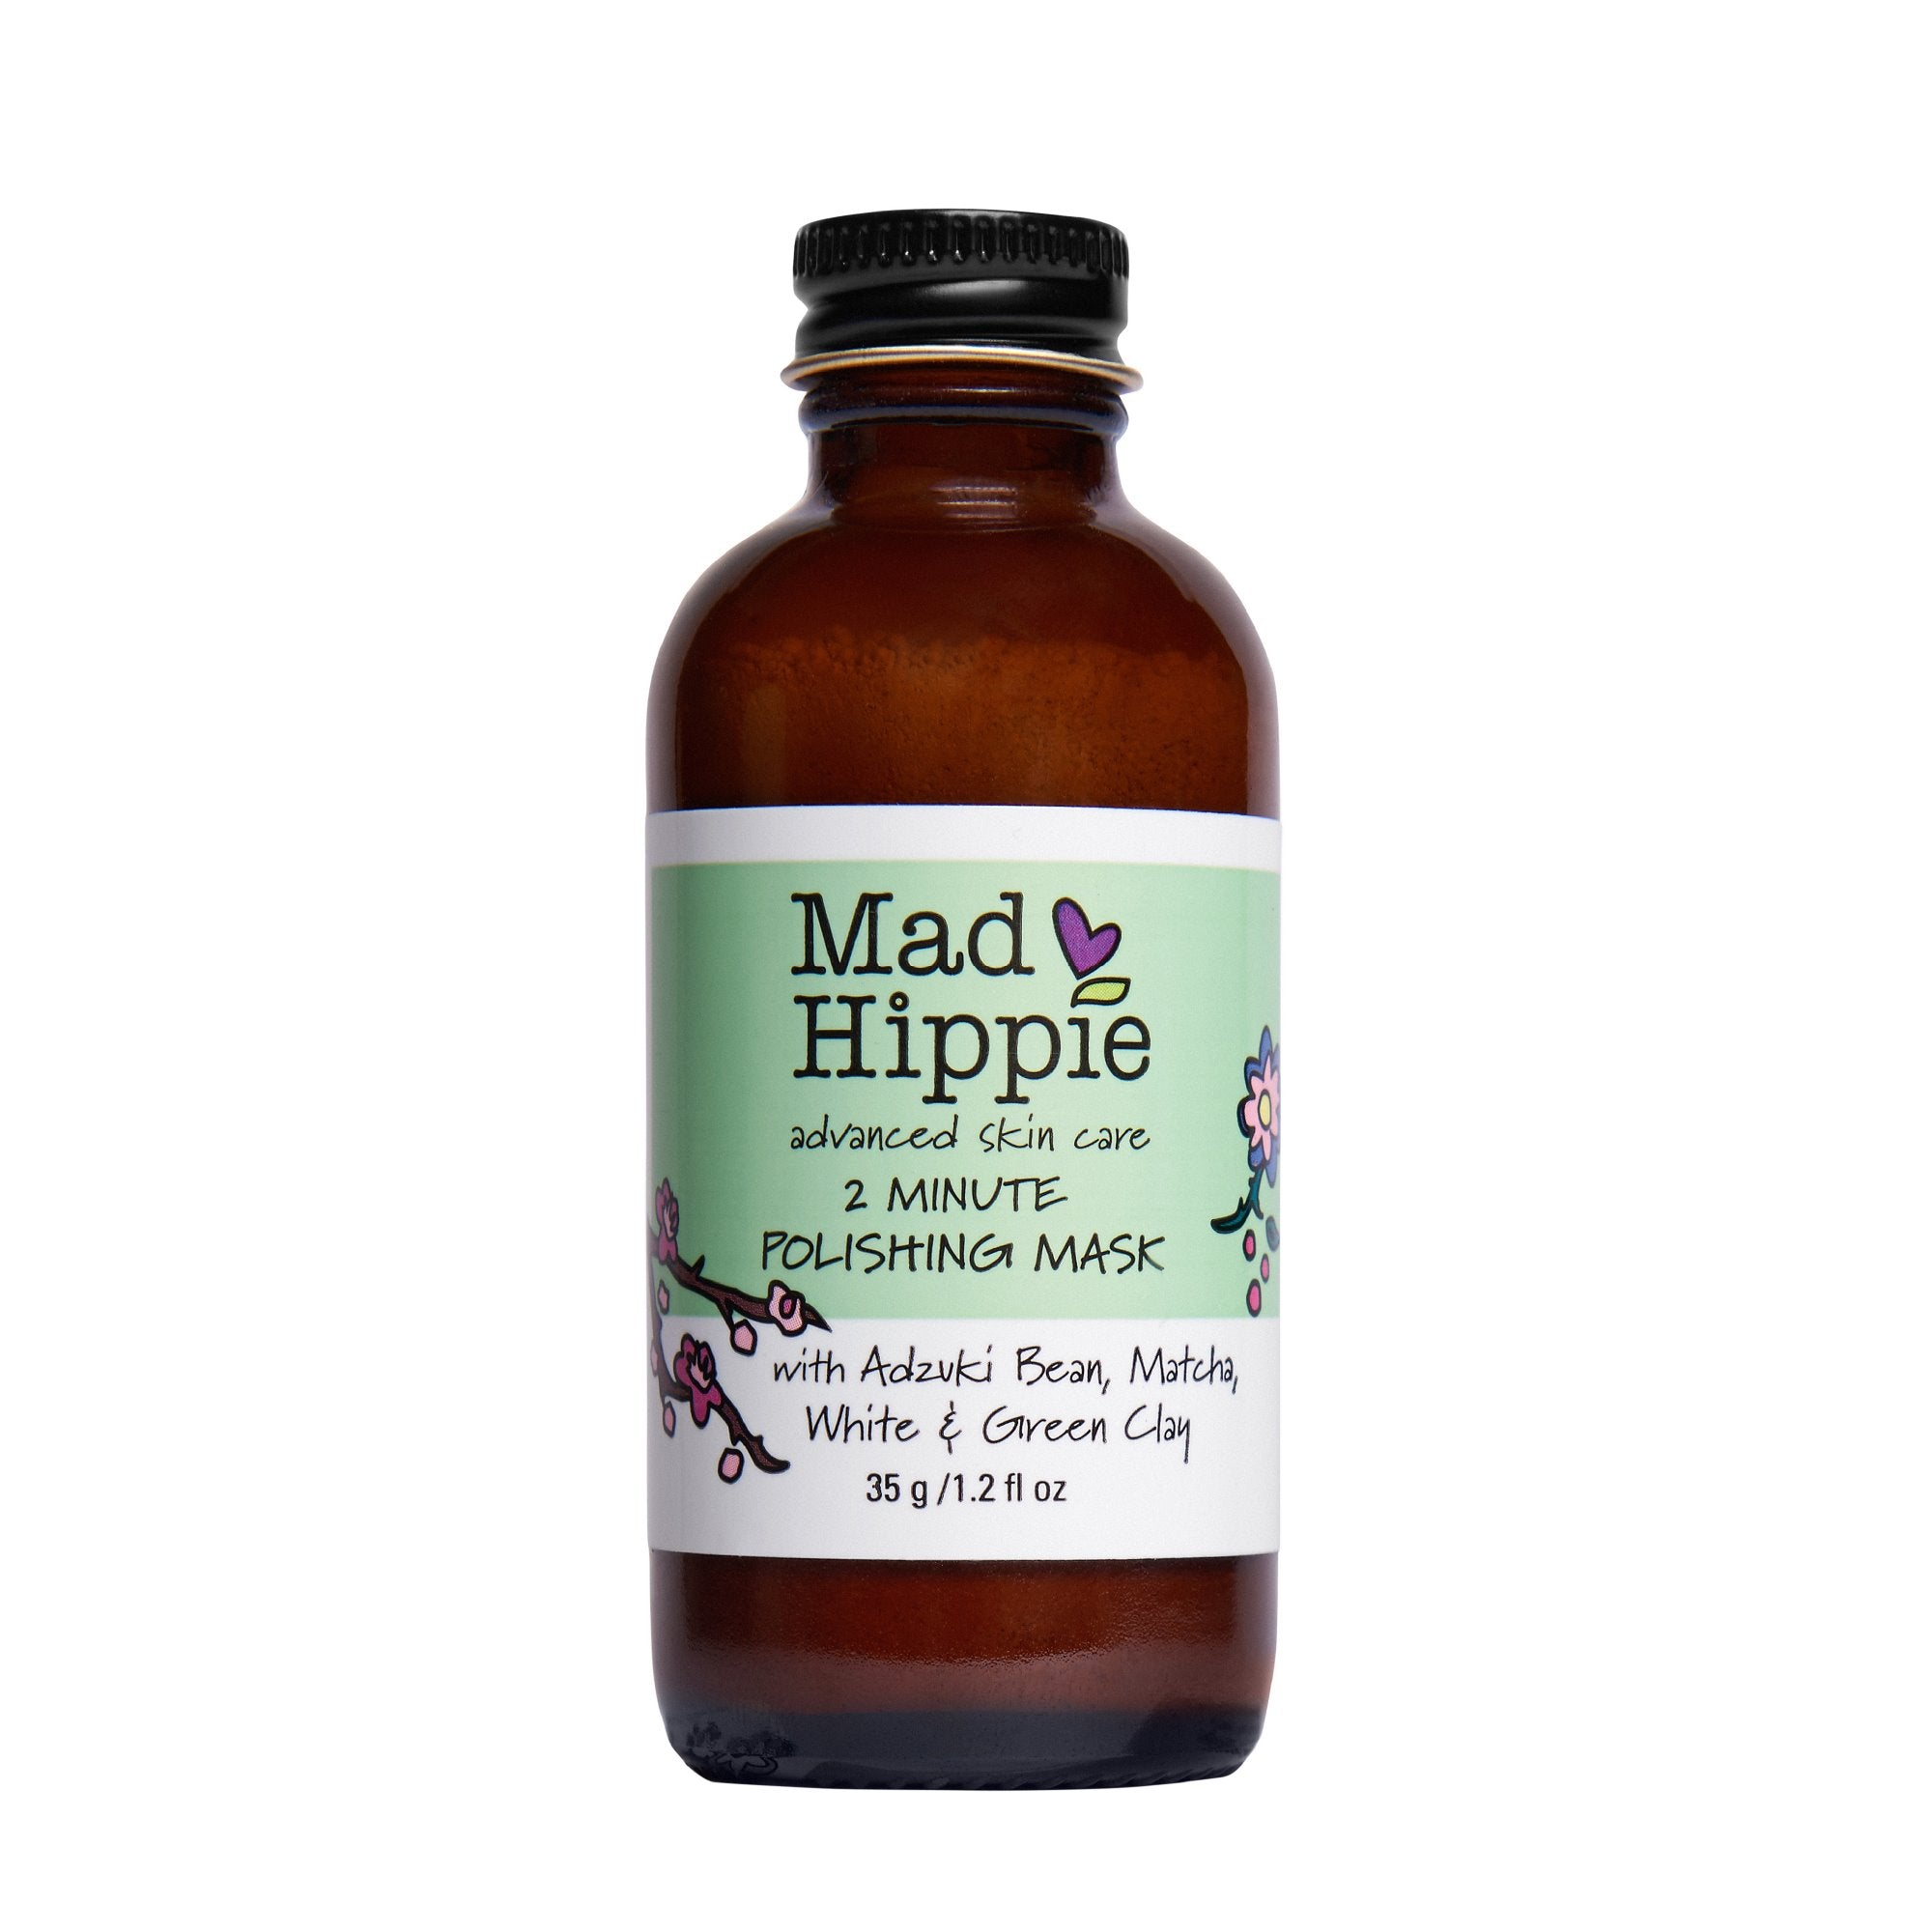 Mad Hippie 2-Minute Polishing Mask (35g) Mask - Skinspace